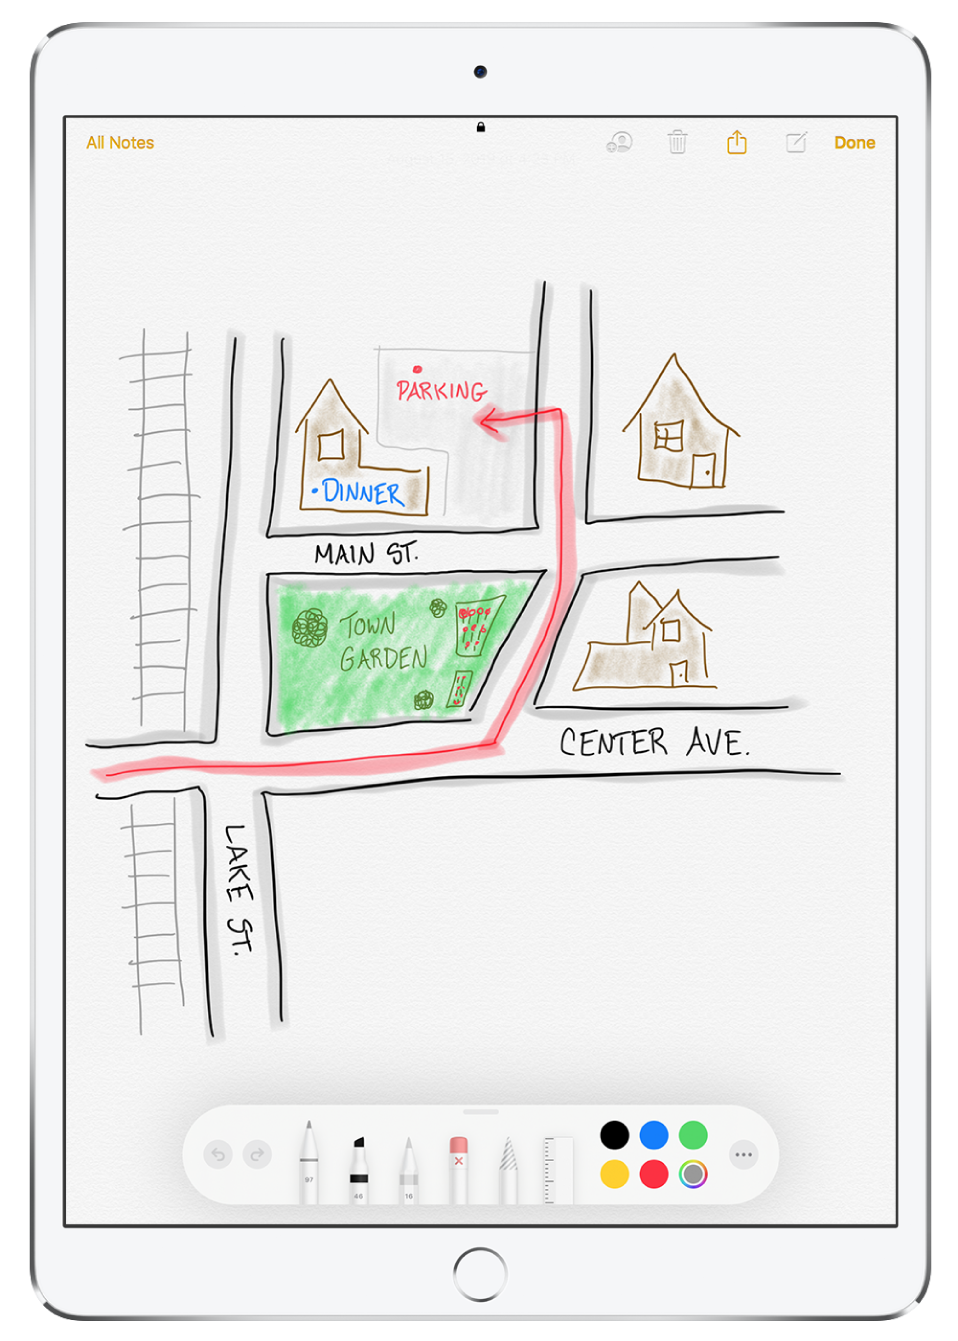 A drawing of a neighborhood inside a note in the Notes app. The drawing includes labeled streets and a red arrow directing to available parking. Along the bottom of the screen is the Markup toolbar with a writing utensil and a custom color selected.